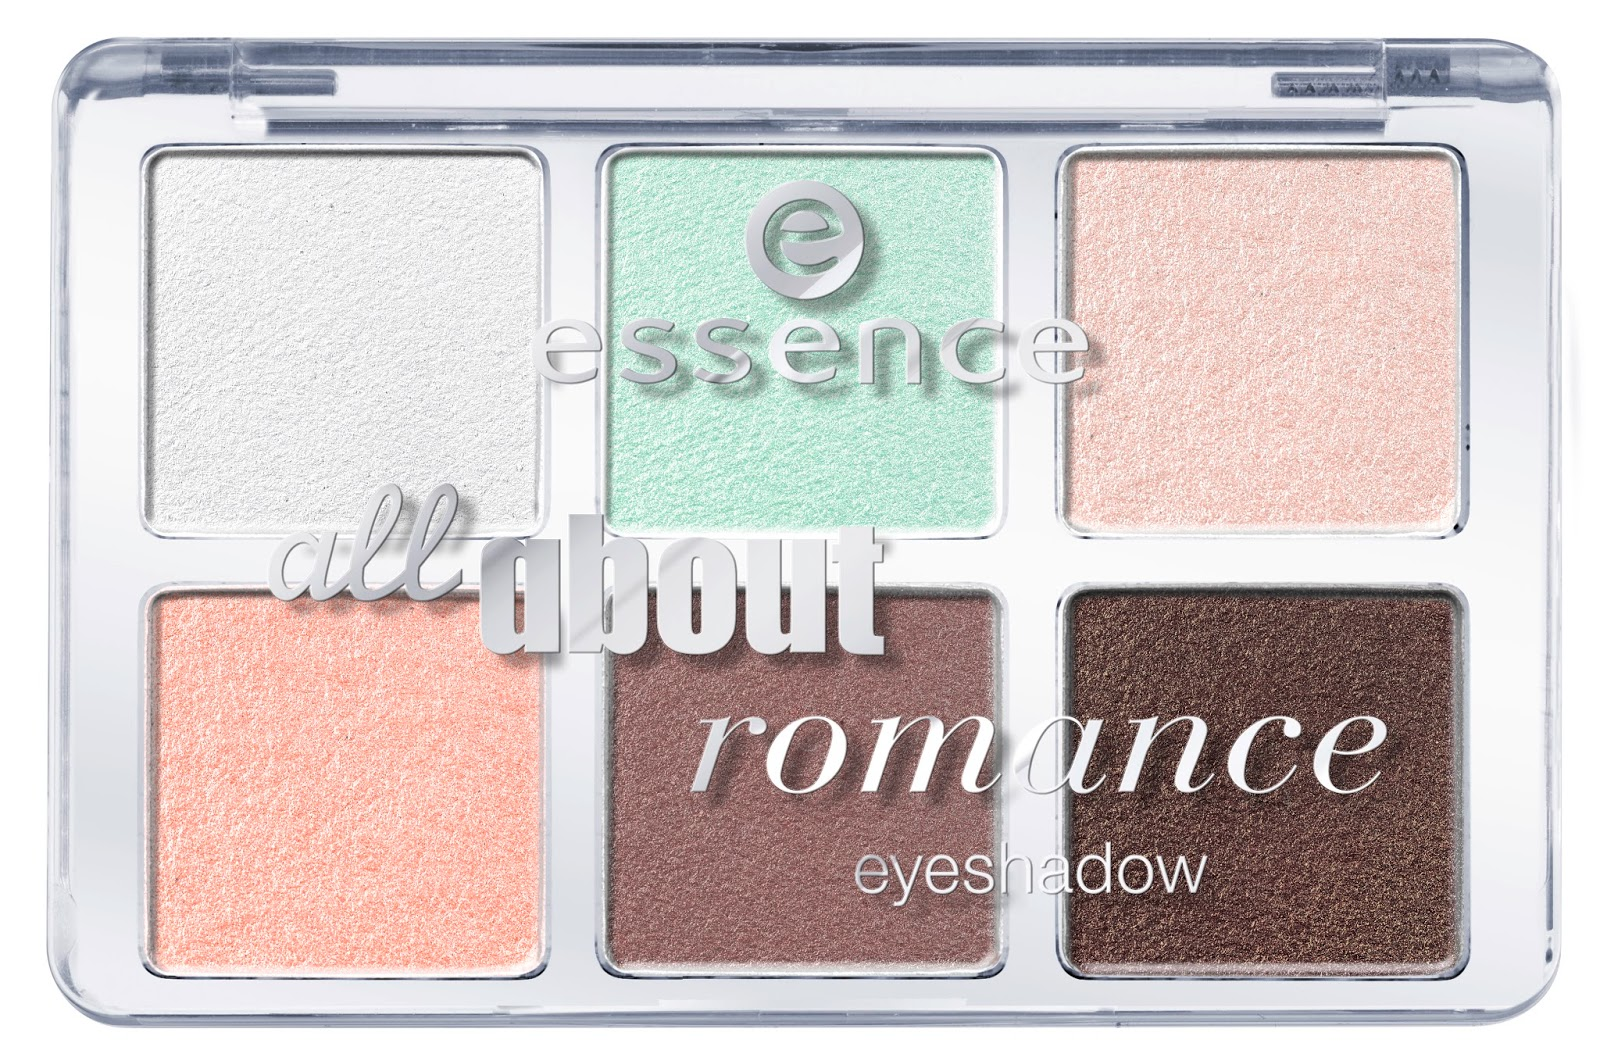 Esence all about … eyeshadow palettes